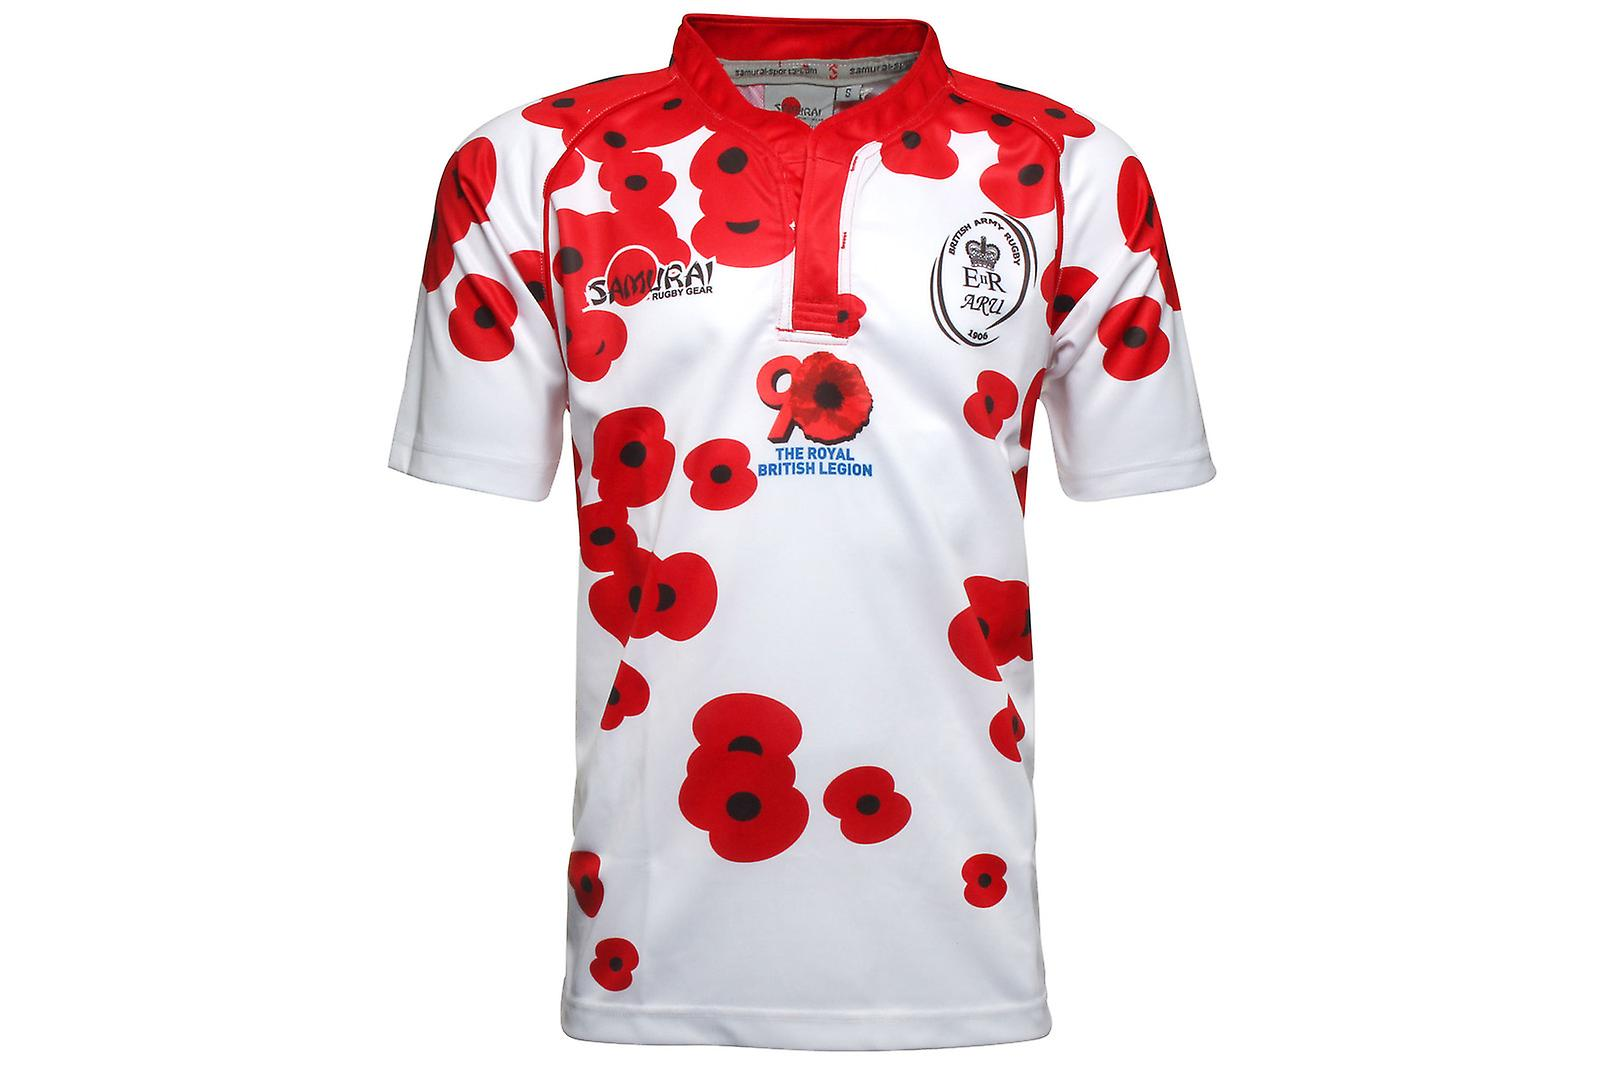 29a3c9c972c Click image to zoom. Samurai Army Rugby Union Poppy Appeal S/S Rugby Shirt